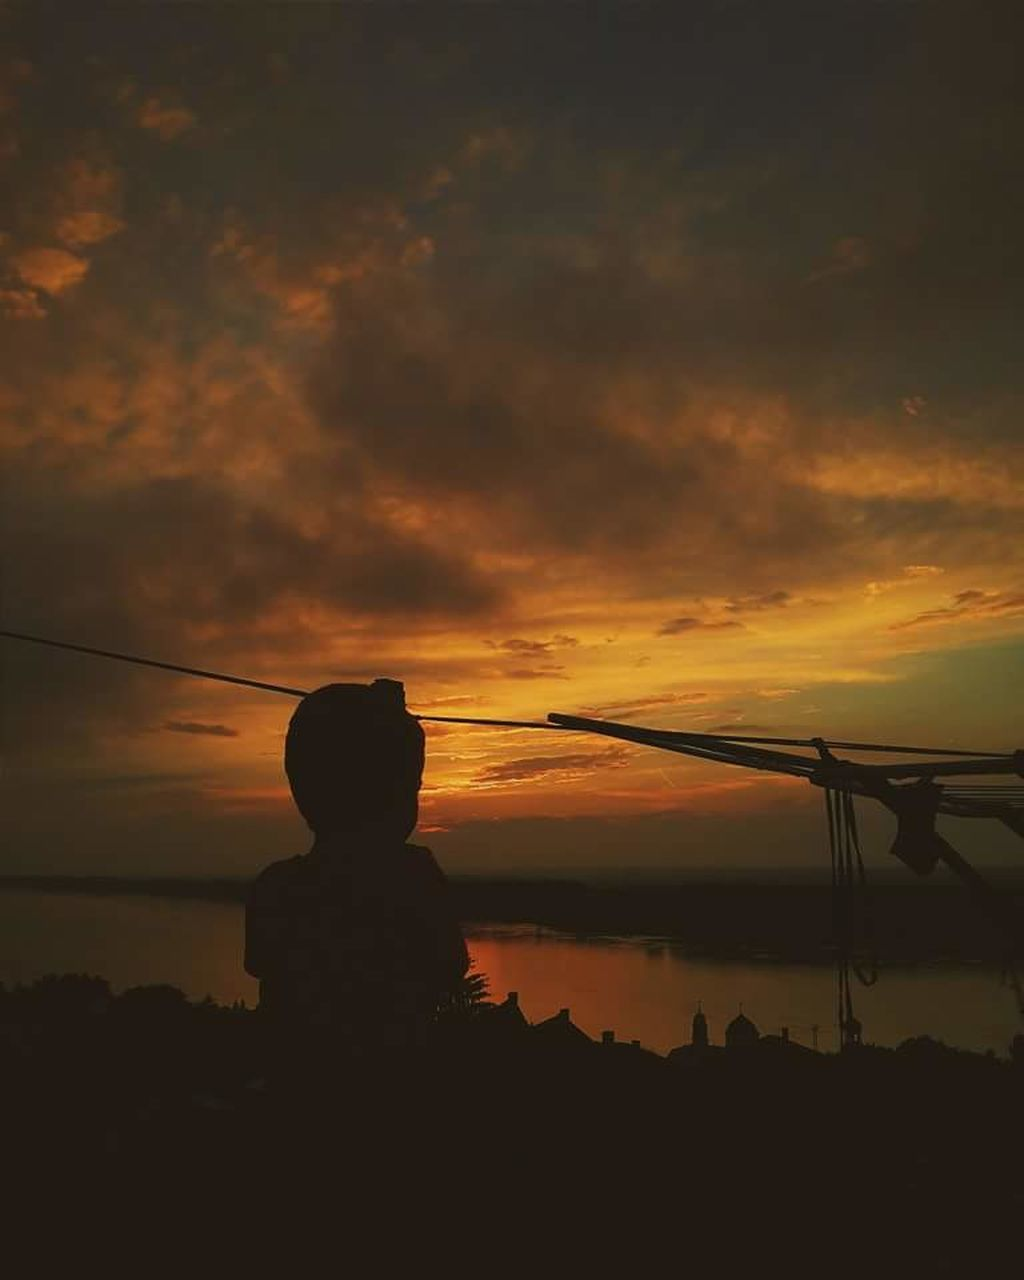 sunset, silhouette, orange color, sky, one person, real people, childhood, water, cloud - sky, nature, beauty in nature, sea, scenics, leisure activity, outdoors, boys, lifestyles, fishing tackle, standing, child, tree, children only, people